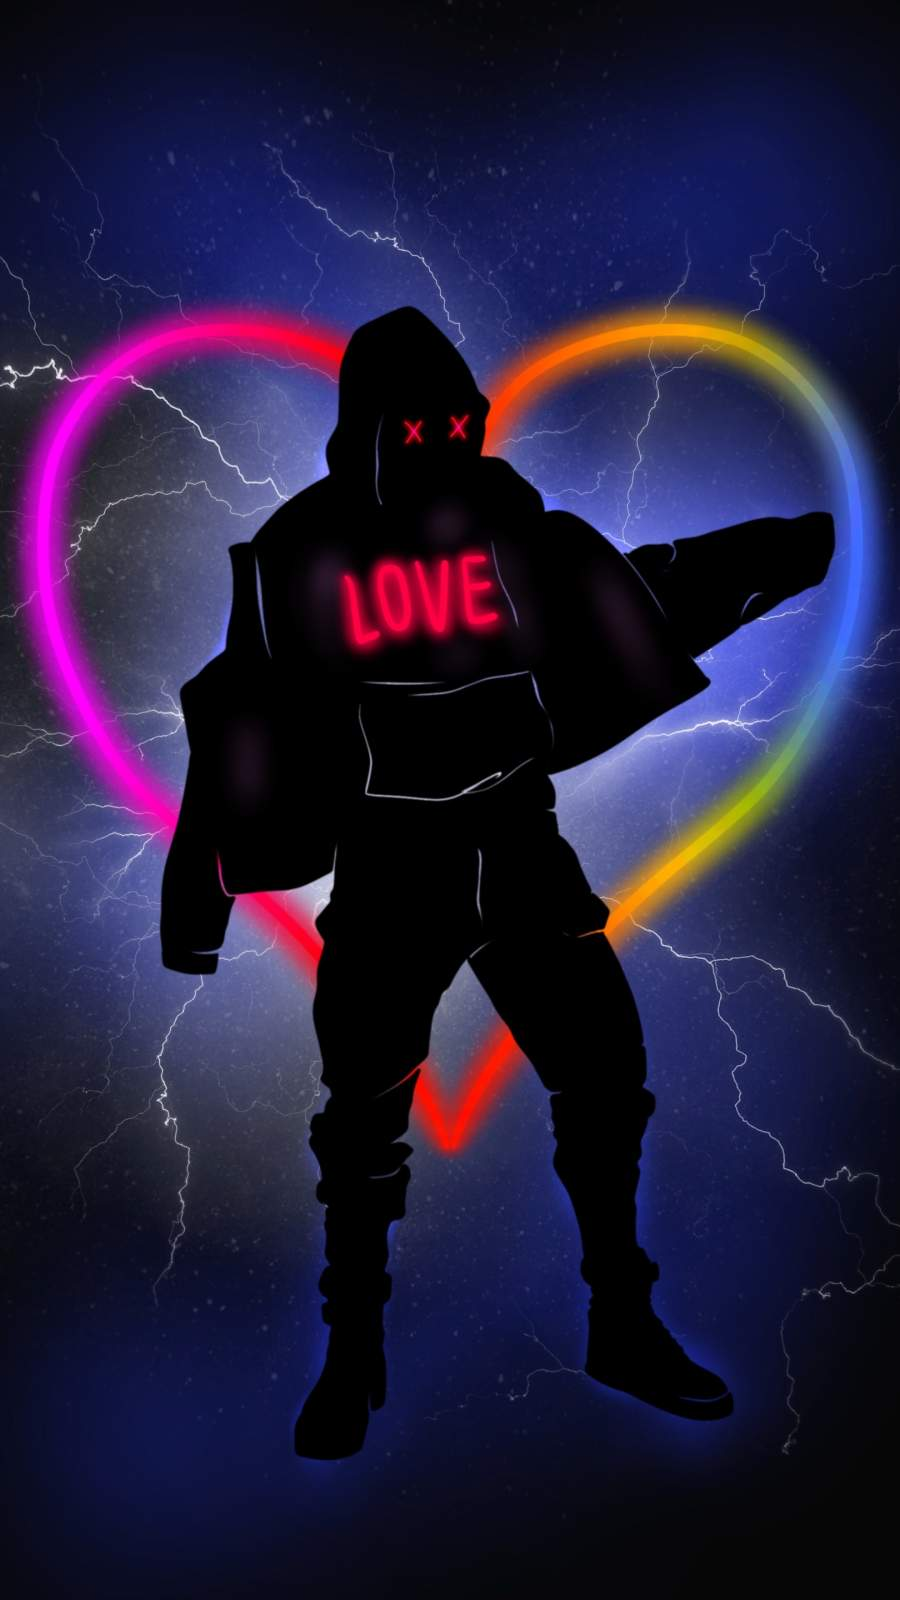 Love Man iPhone Wallpaper